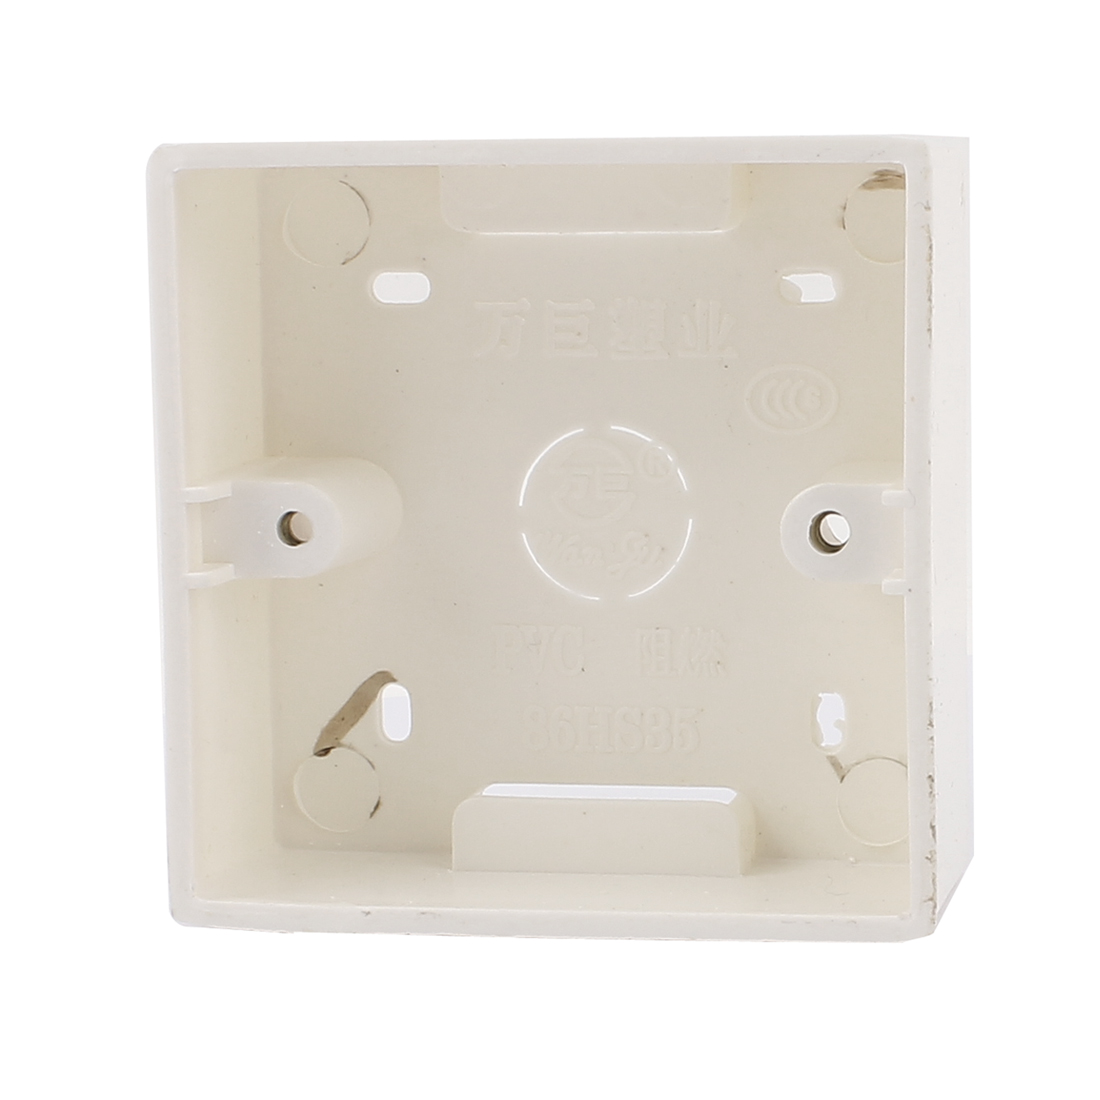 86mm x 86mm x 35mm Square Design PVC Switch Pattress Back Box